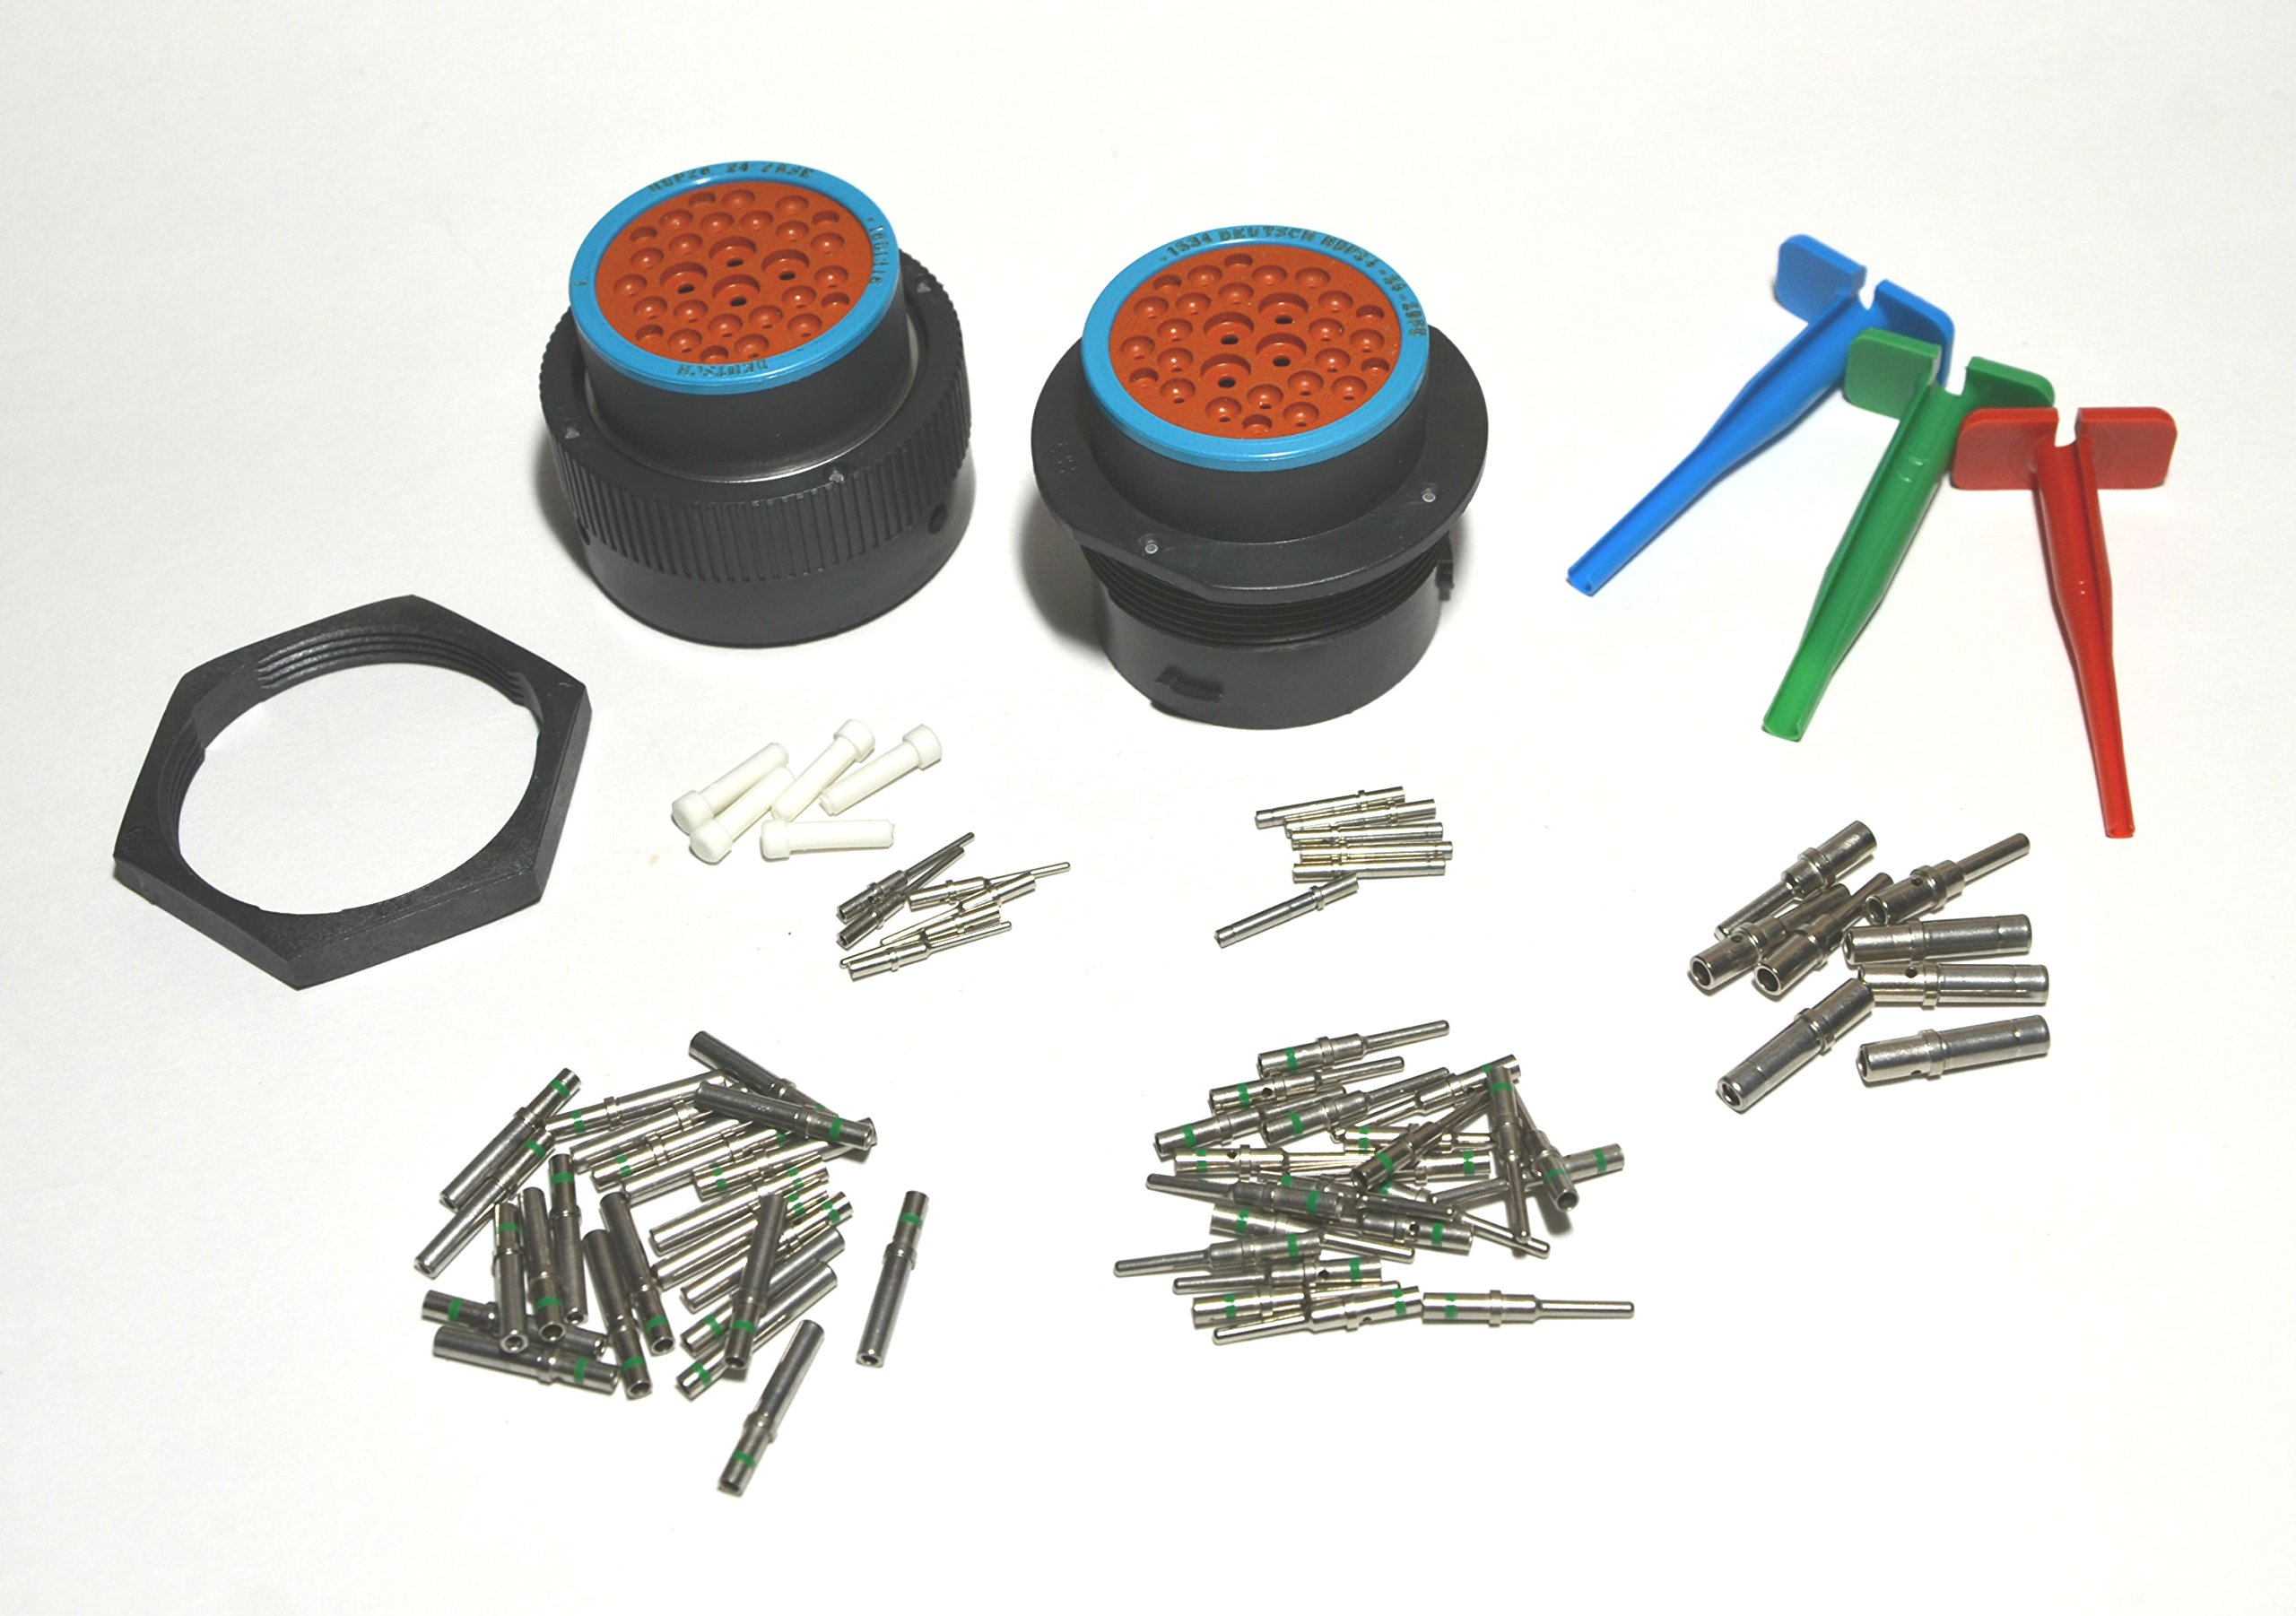 Deutsch HDP20 Bulkhead 29-pin Connector kit, 12-16-20 AWG Solid Contacts